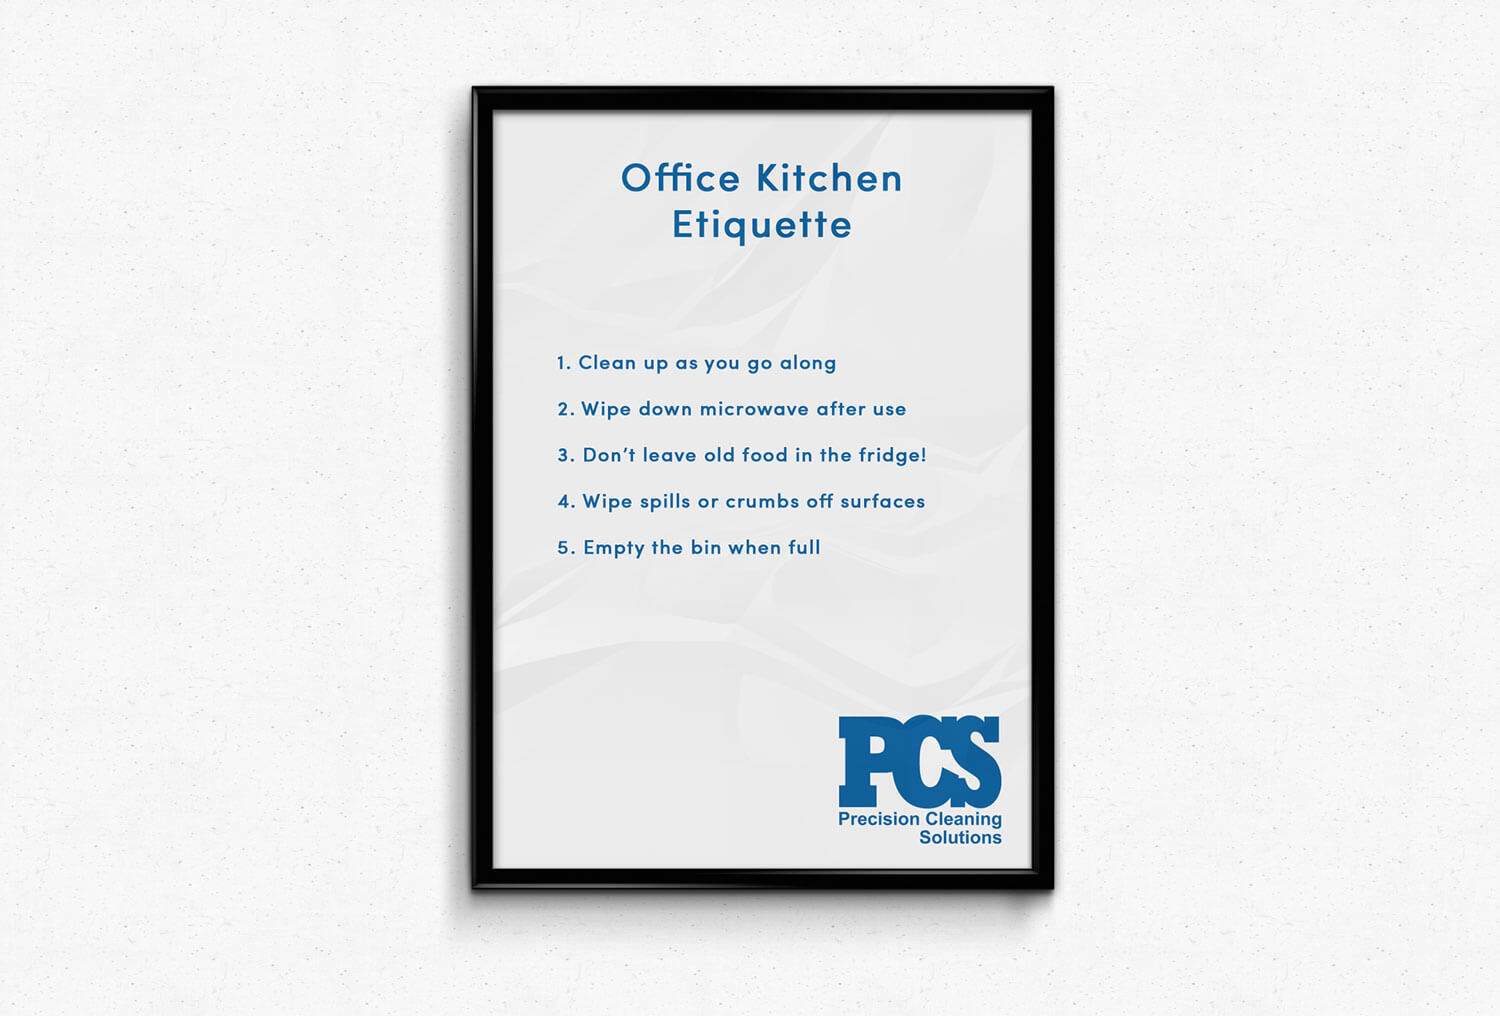 Top 10 Office Cleaning Tips | Commercial Cleaning Tips ...